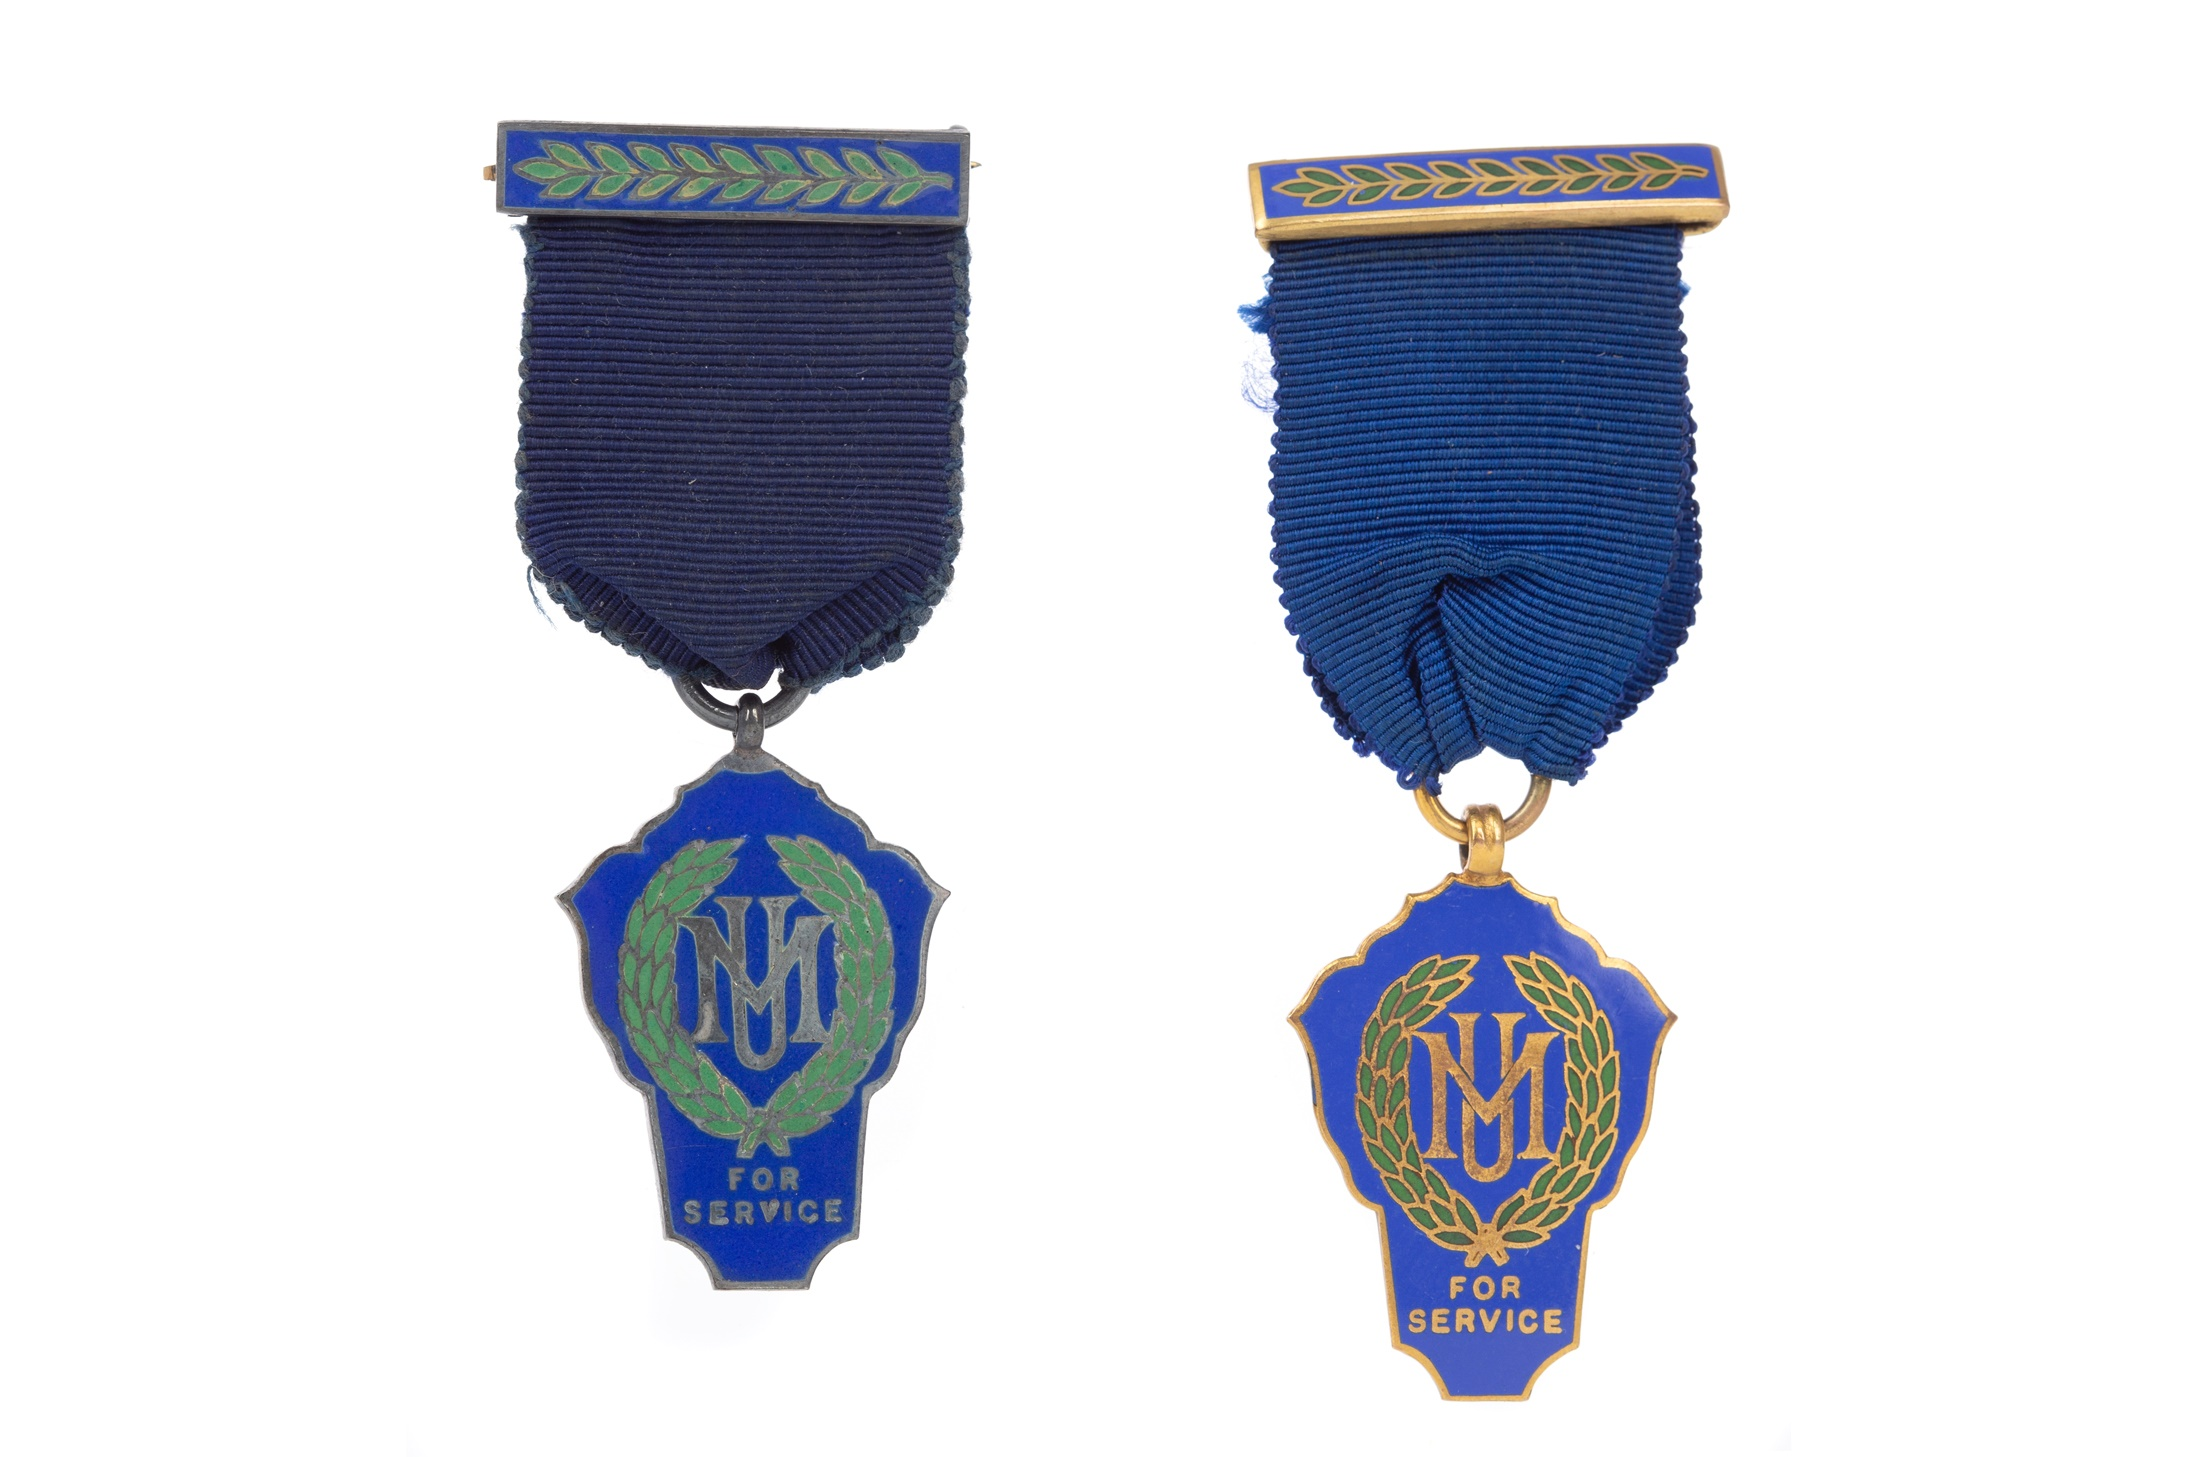 TWO ENAMELLED MEDALS